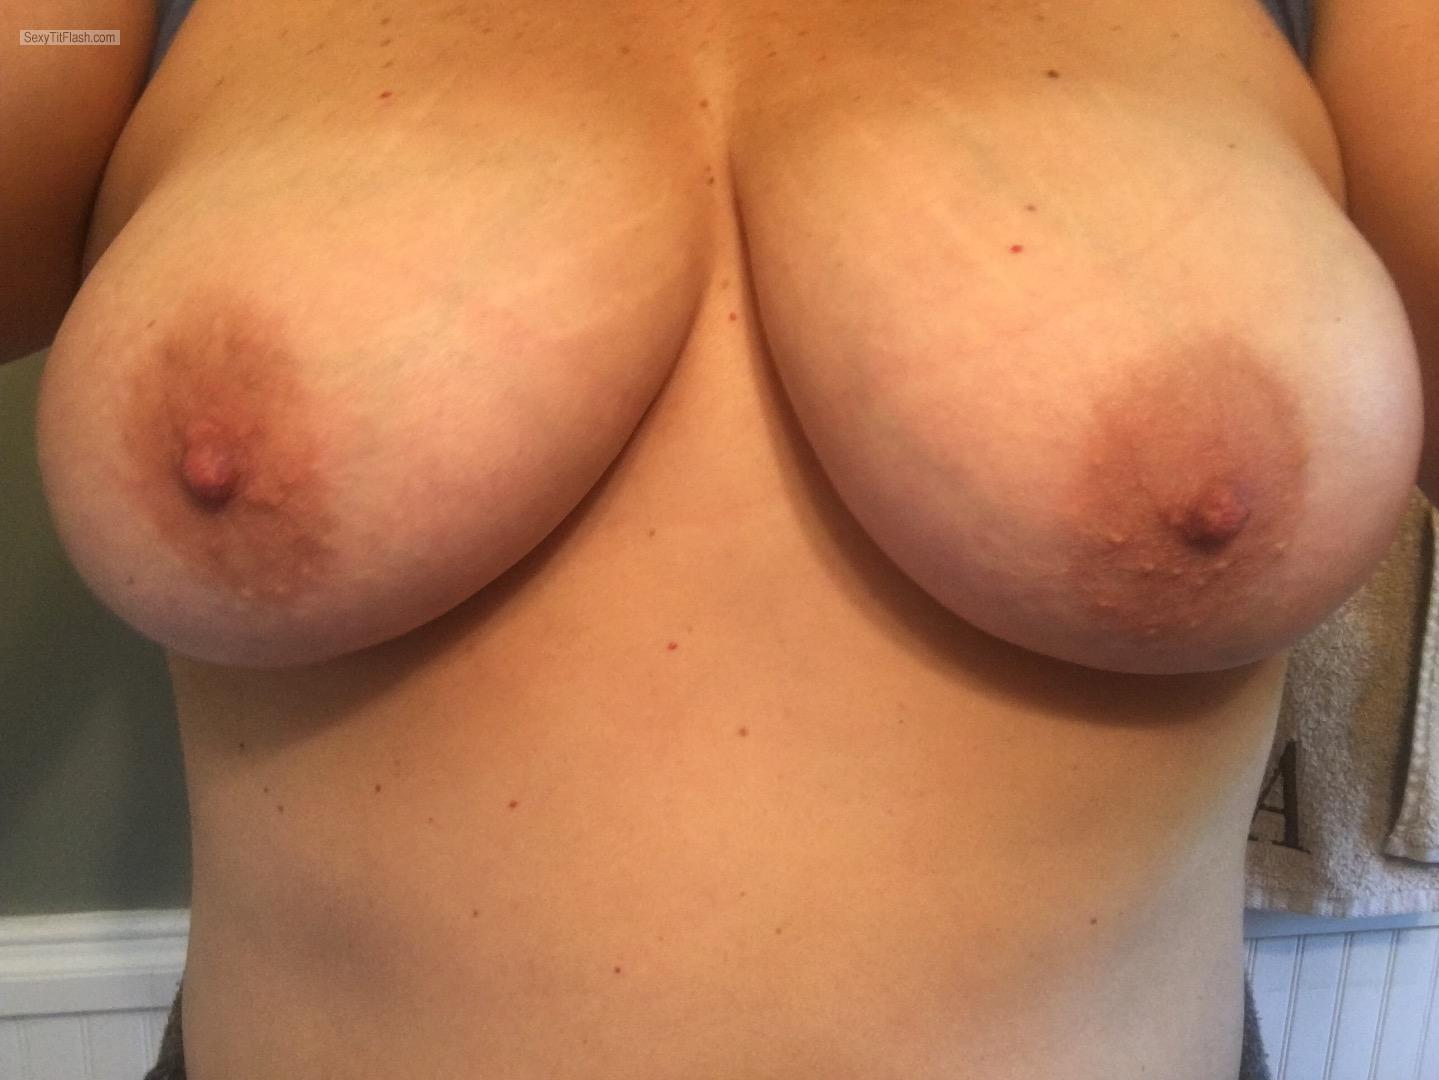 My Big Tits Selfie by Shan